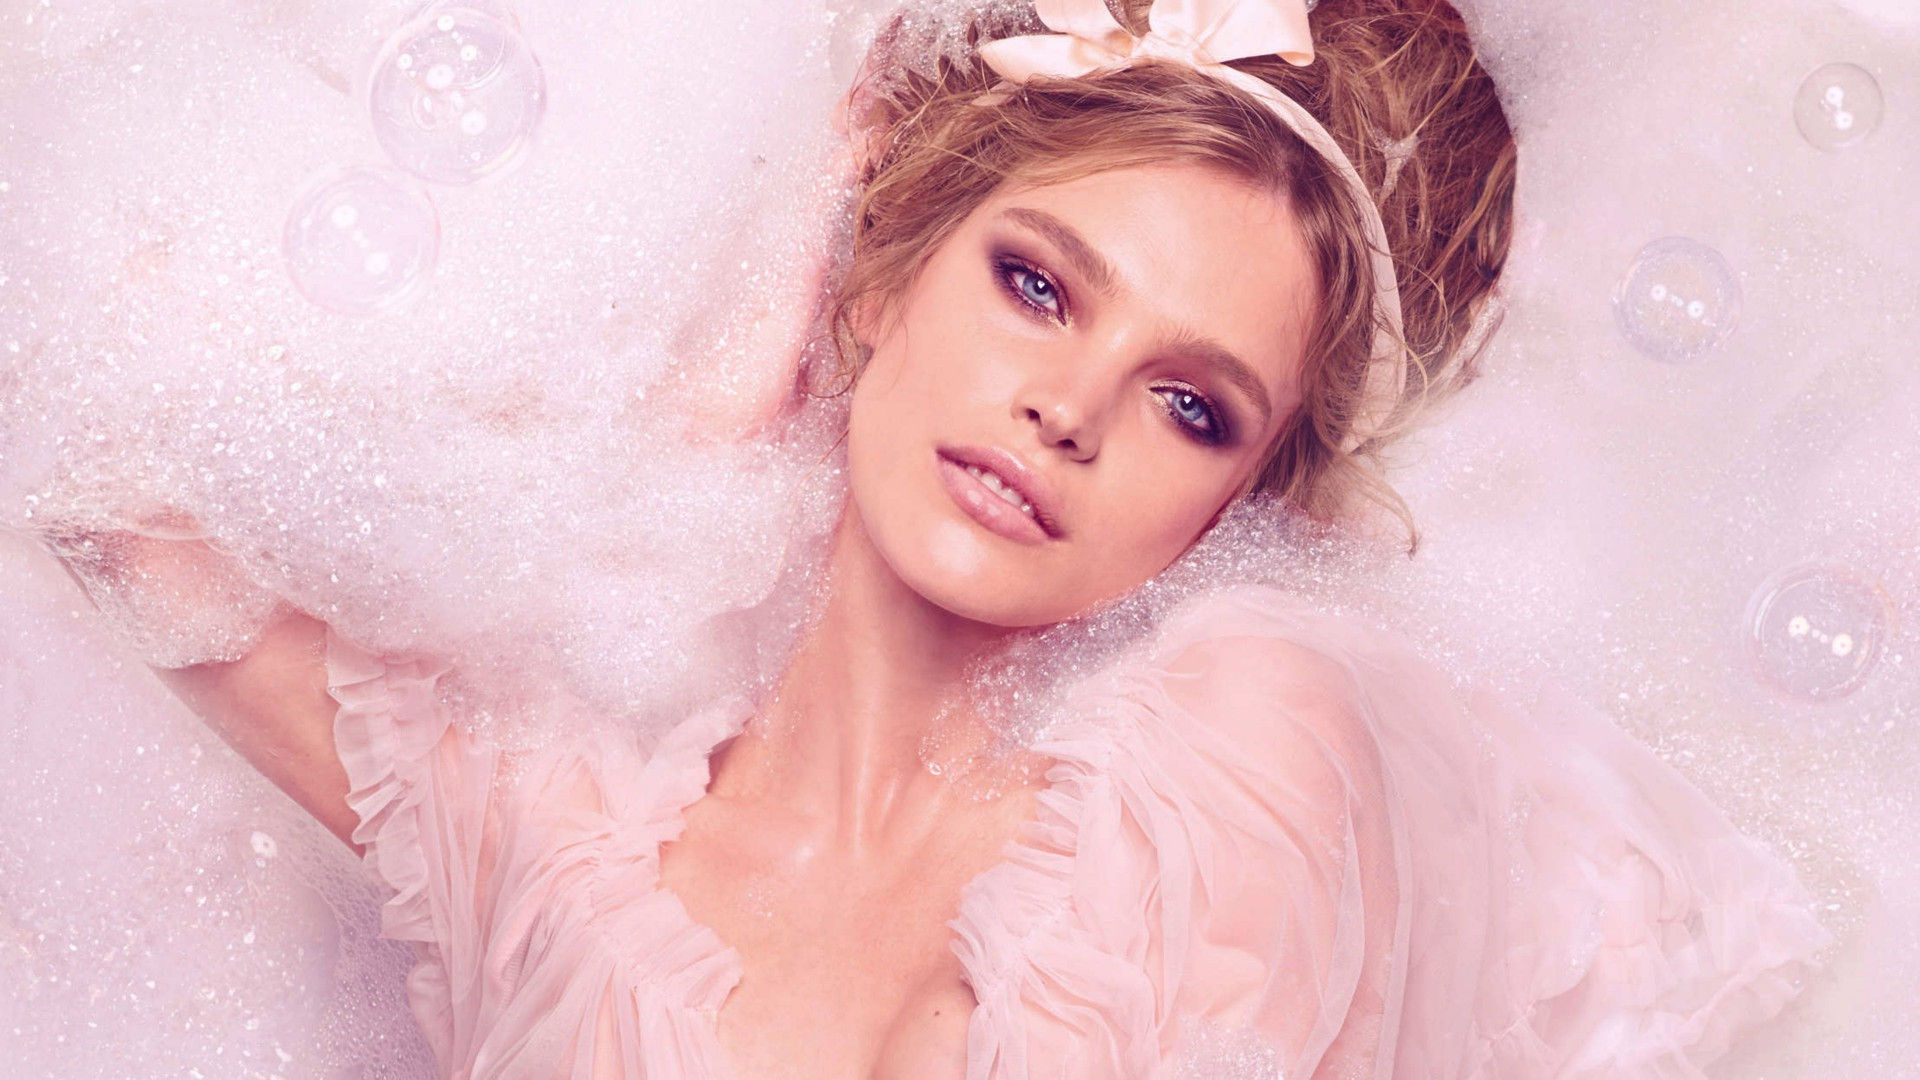 Natalia Vodianova, Top Fashion Models 2015, model, pink, bath (horizontal)